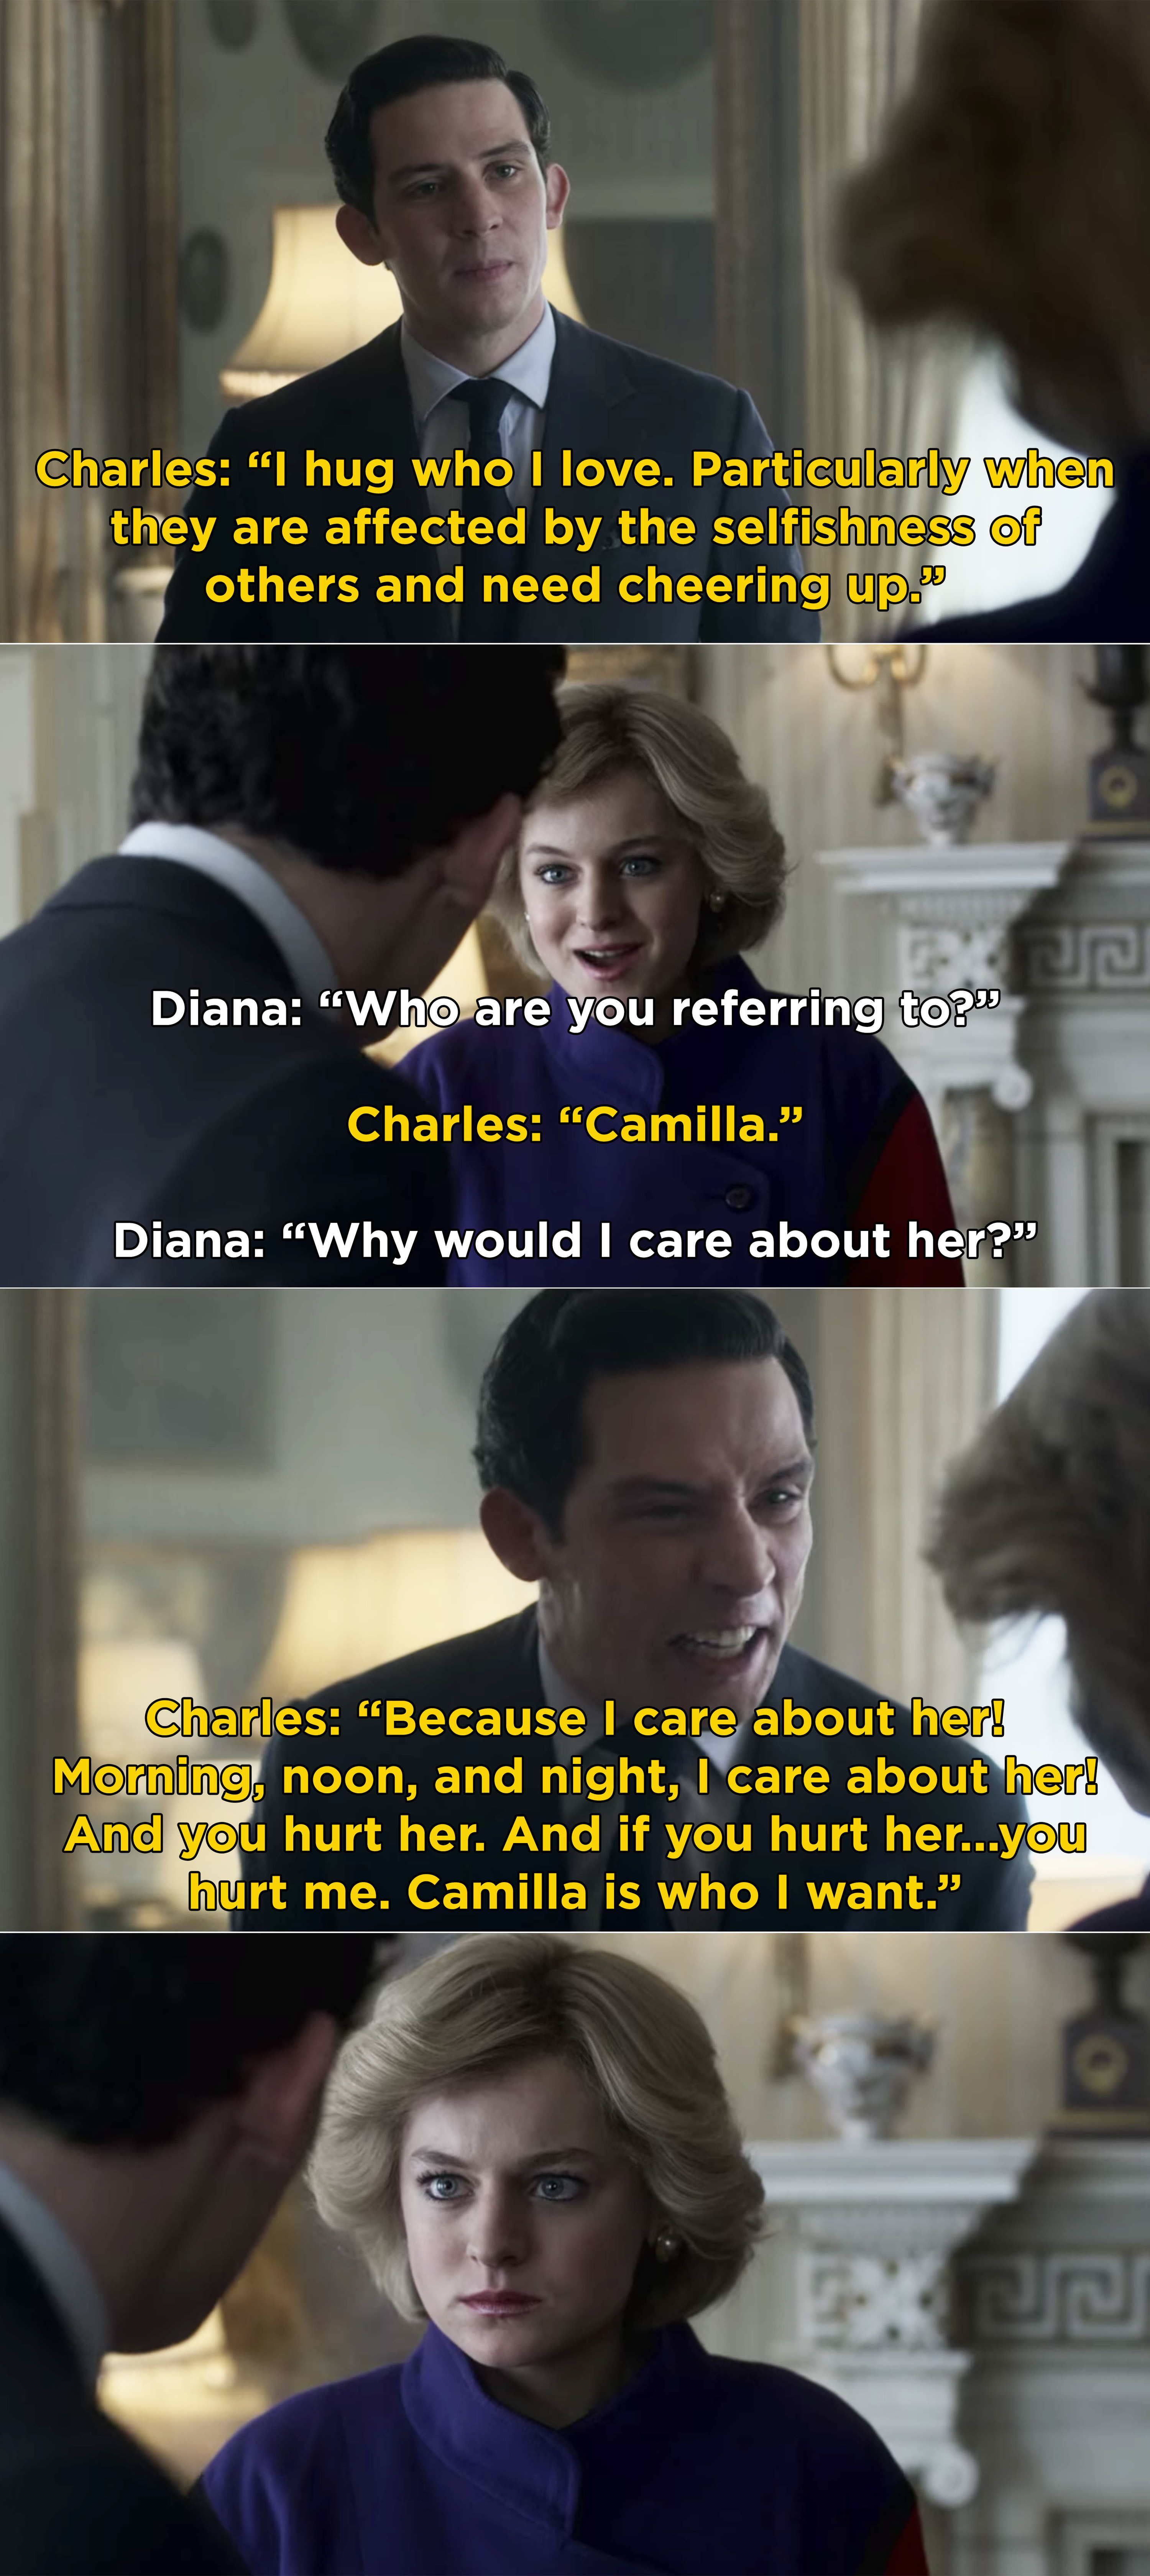 Charles telling Diana that he cares about Camilla all the time